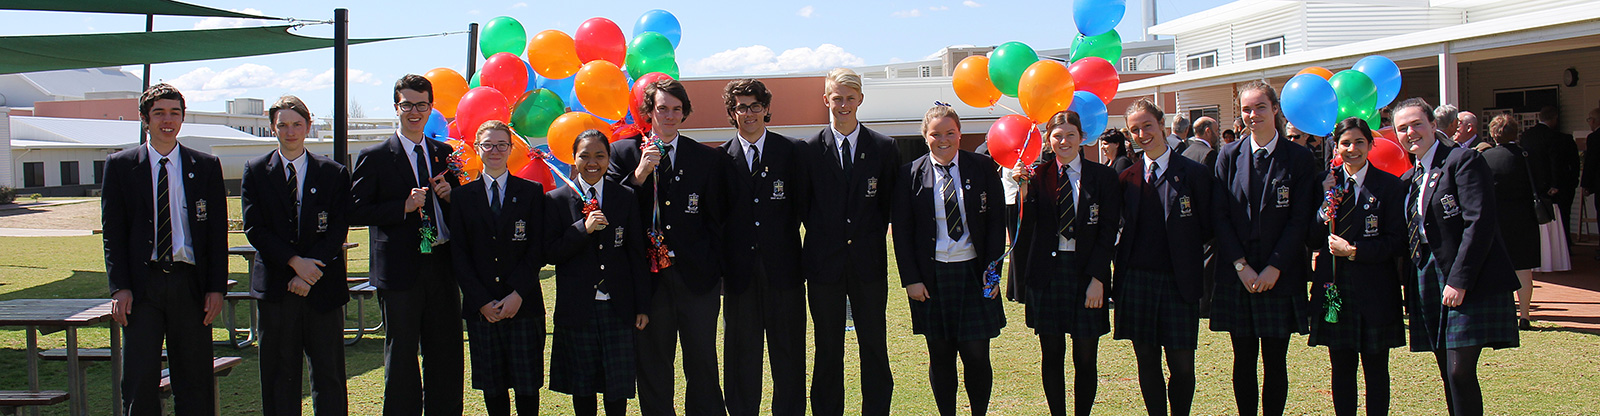 2016 Senior School Leaders at the 10th Anniversary celebrations